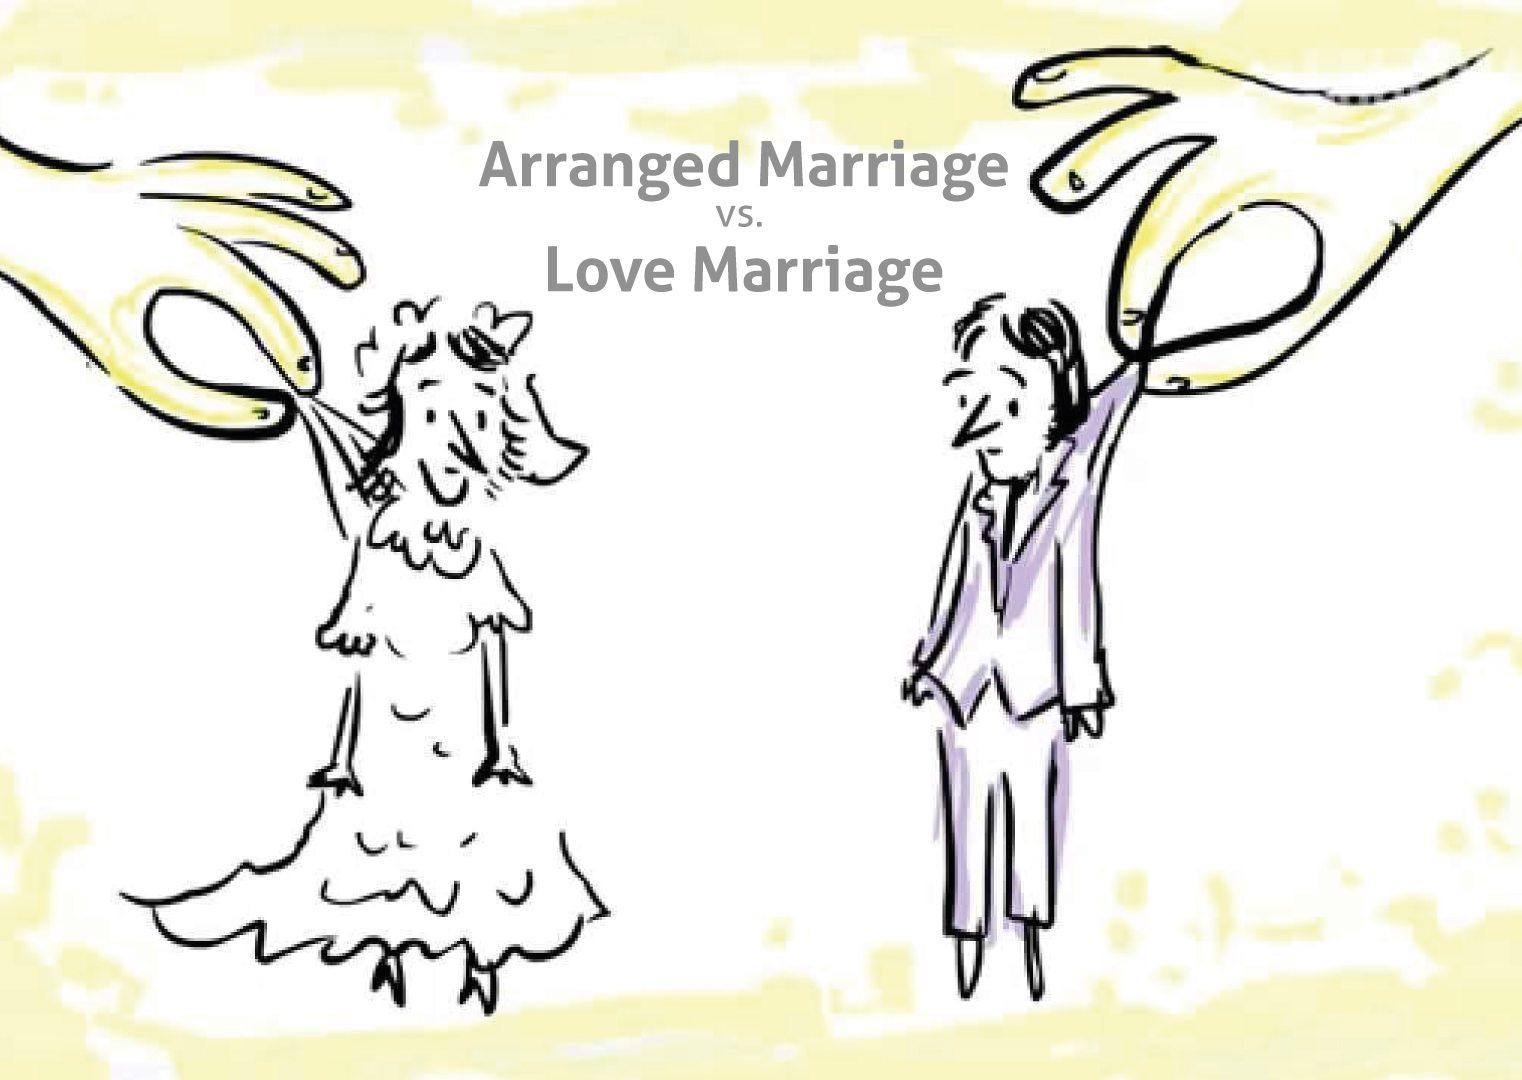 arrange marriage or love marriage Love marriage or arranged marriage there are host of factors that will decide how a person will envisage a marriage and pursue for a final decisionfrom the face and figure of the 'would be' spouseetc etcto his professional background, life style, earning potential.